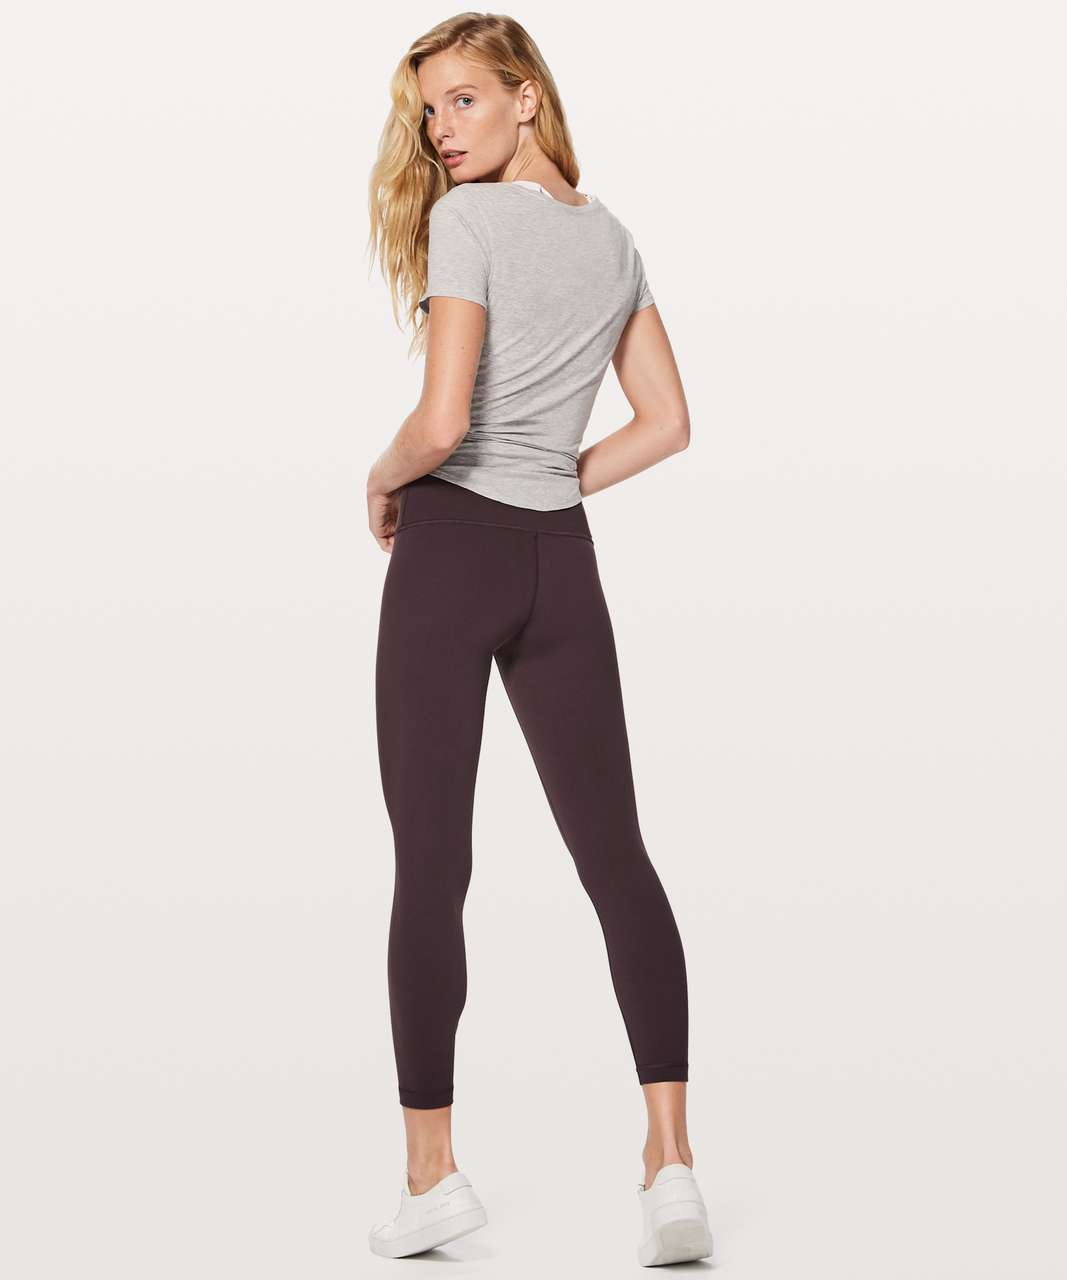 "Lululemon Wunder Under Hi-Rise 7/8 Tight Full-On Luon 25"" - Vintage Grape"